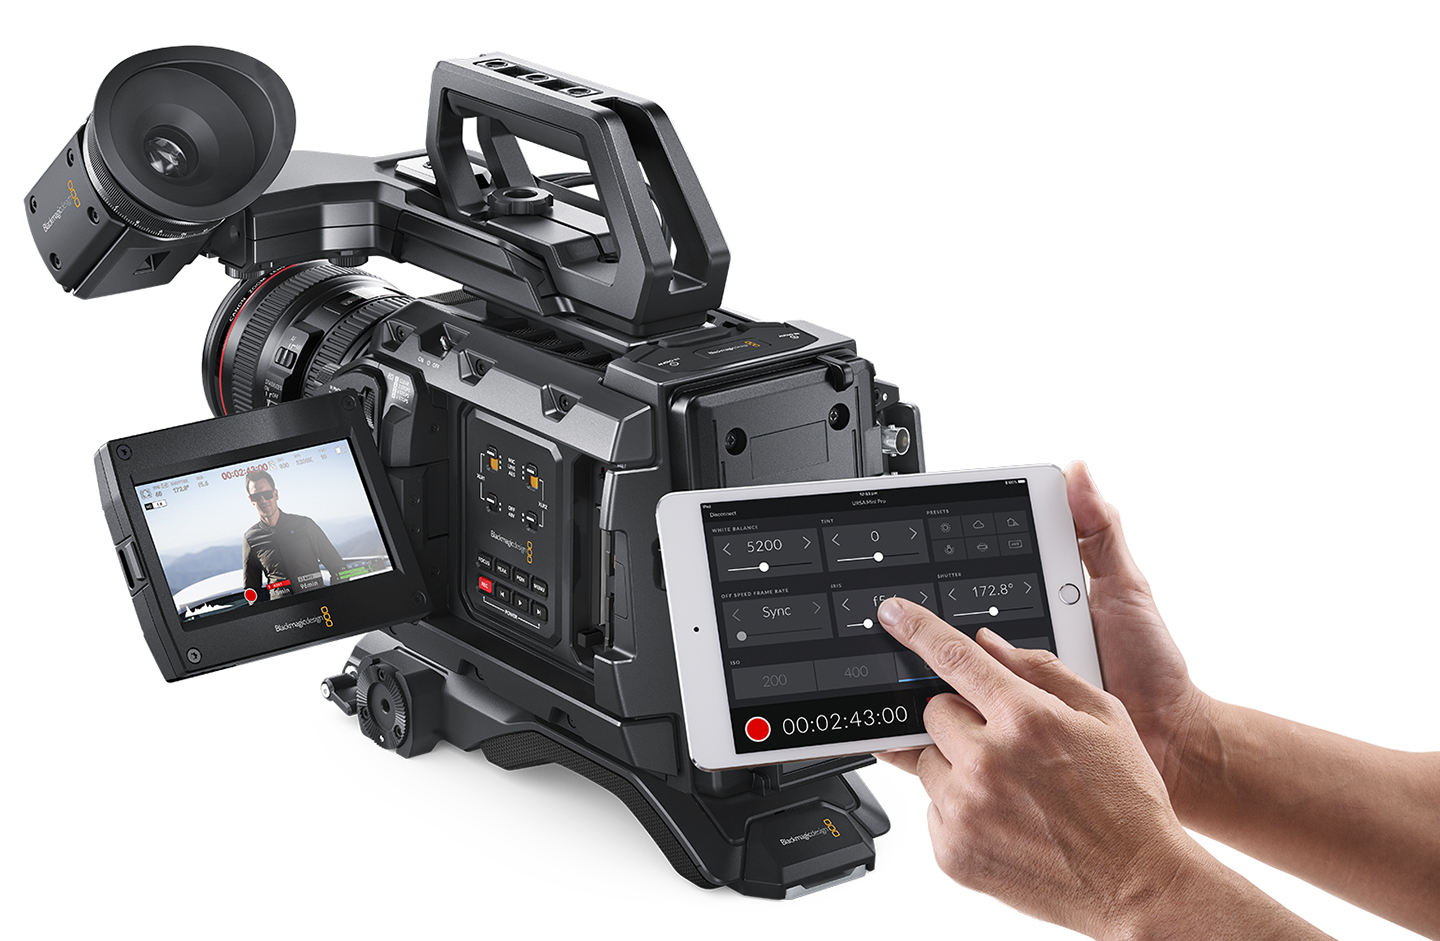 Blackmagic Design Ursa Mini Pro Remote Operation App and